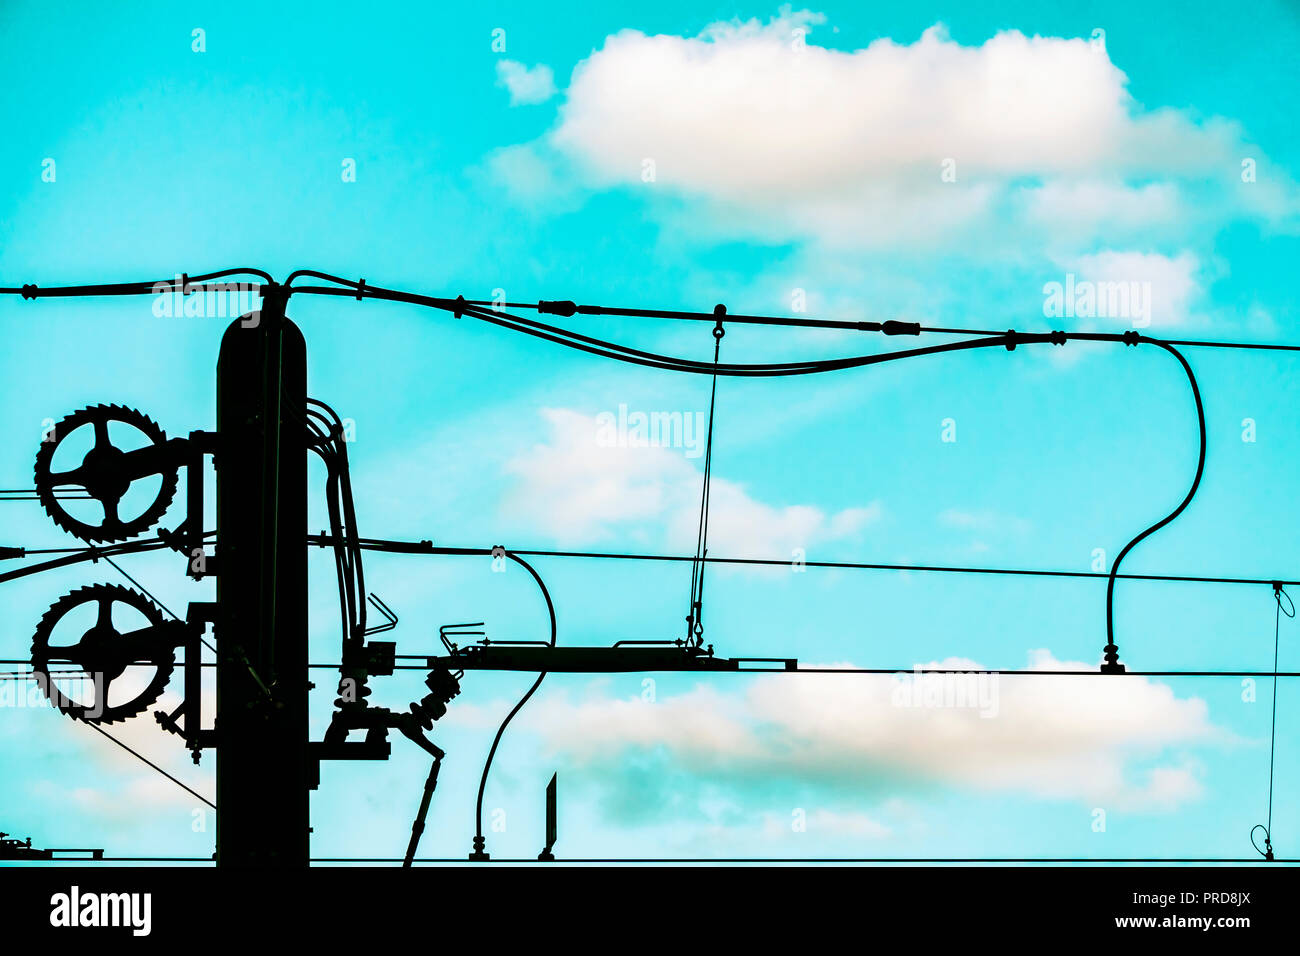 Overhead Wire Stock Photos & Overhead Wire Stock Images - Alamy